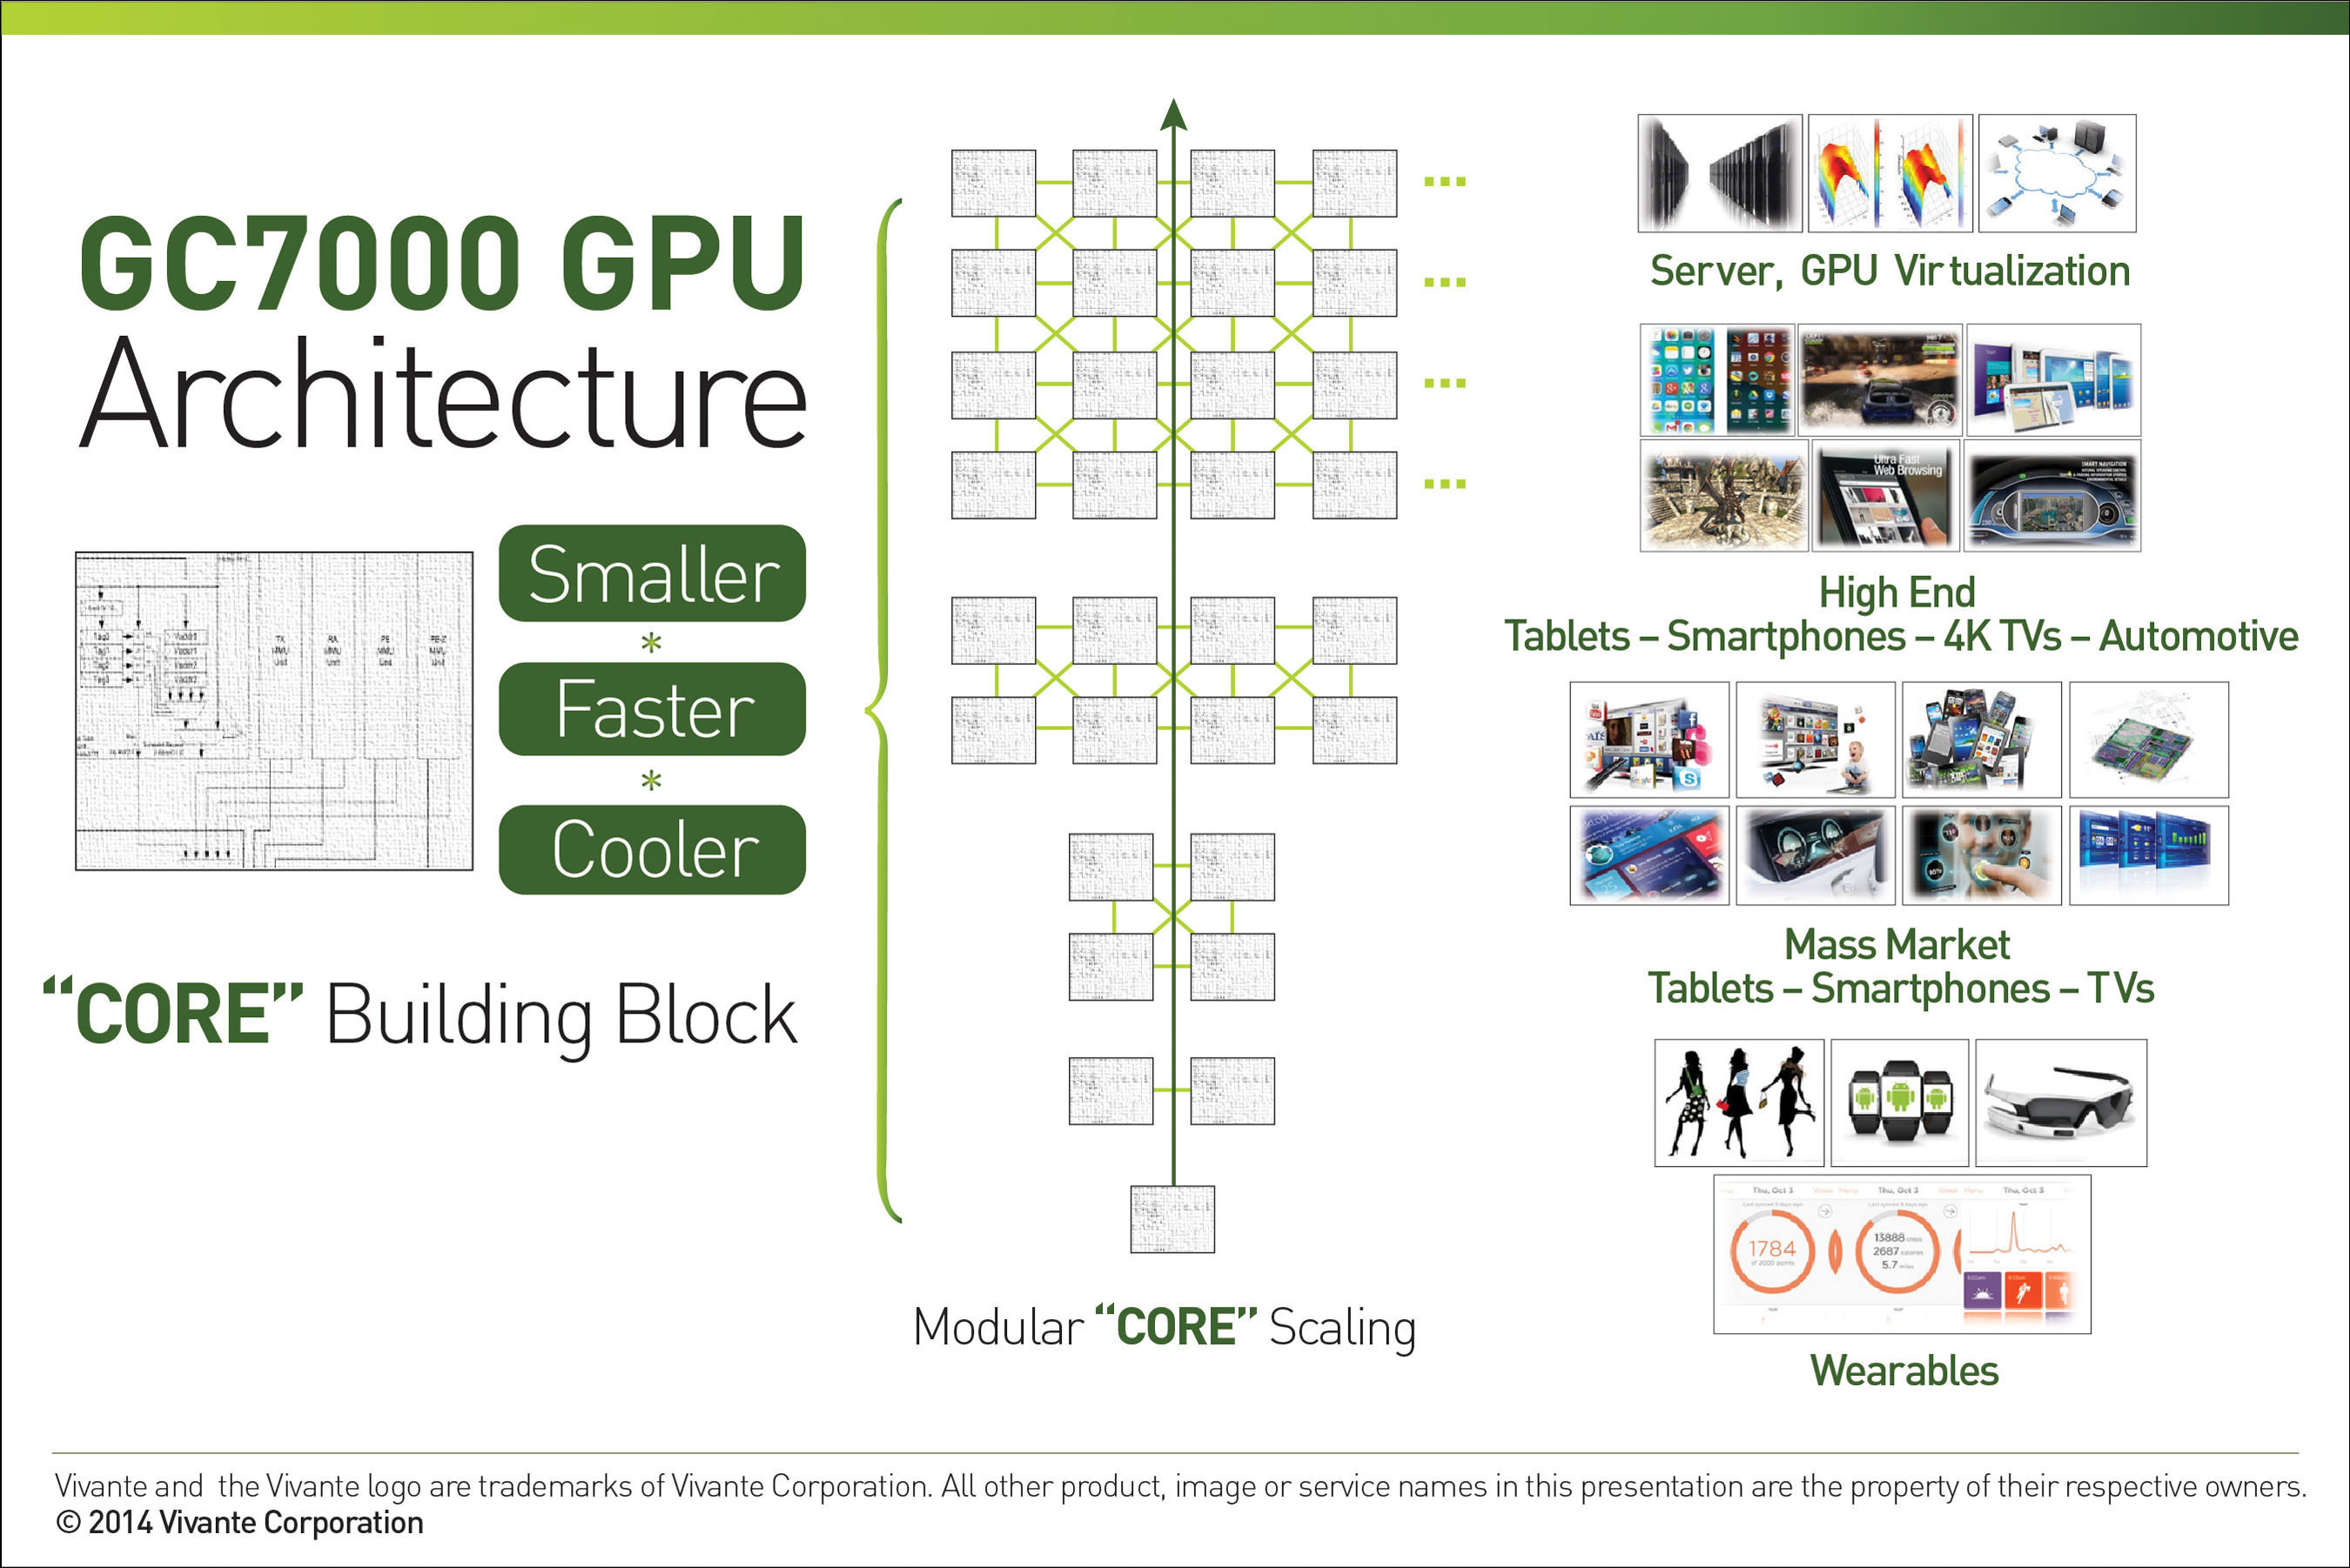 Vivante GC7000 Vega GPU core scaling from wearables to high end mobile devices and server GPU virtualization. ...